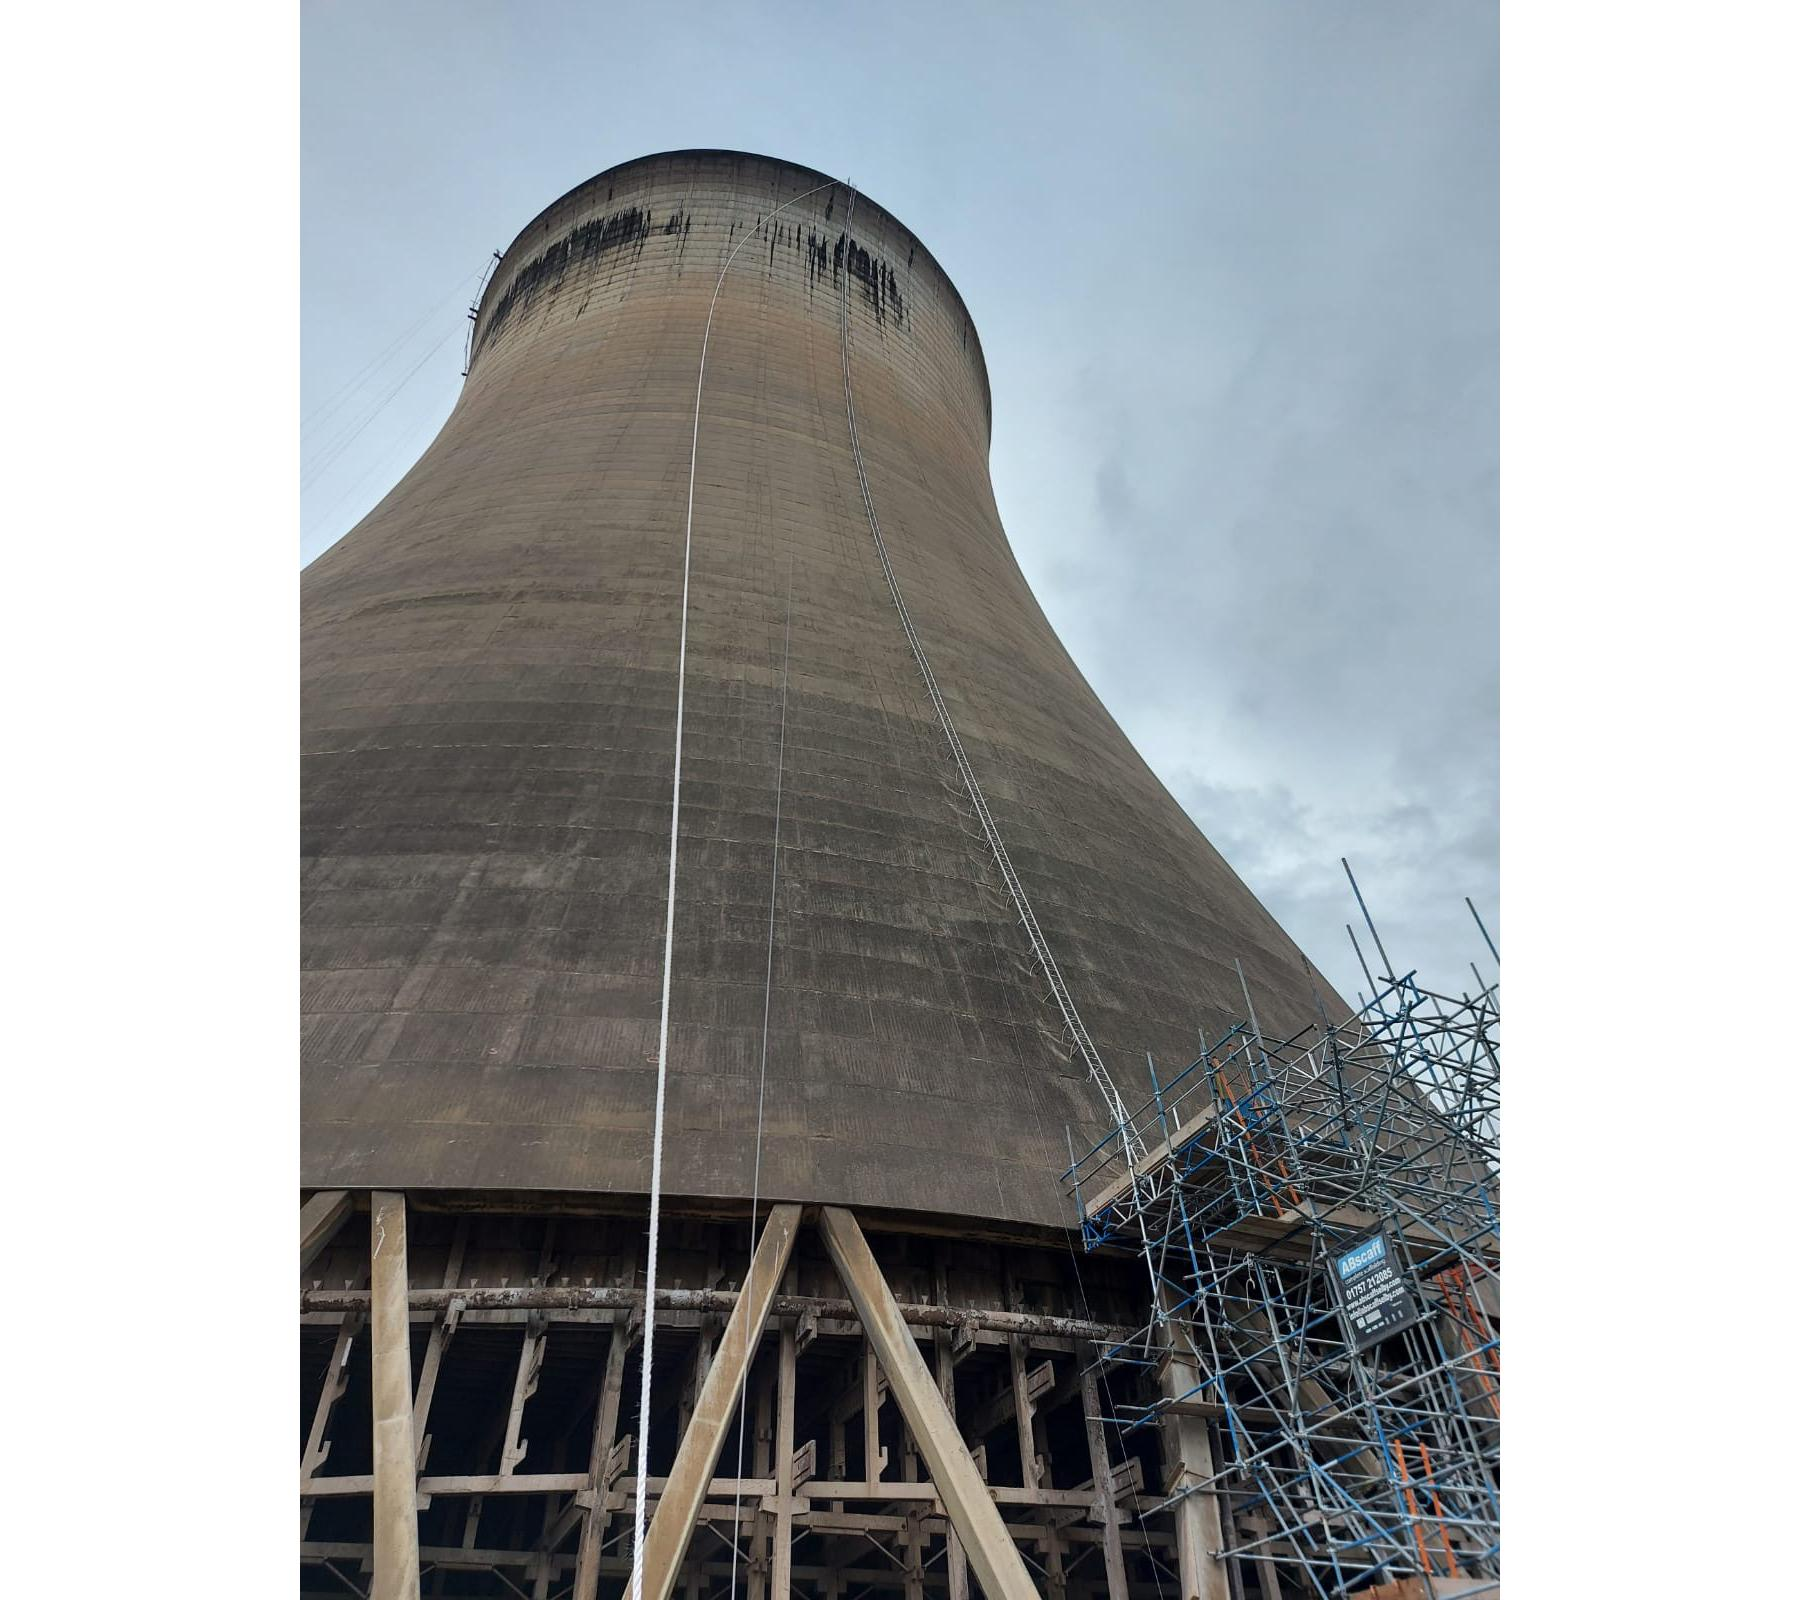 PTSG's steeplejacks complete project for Drax Power Ltd